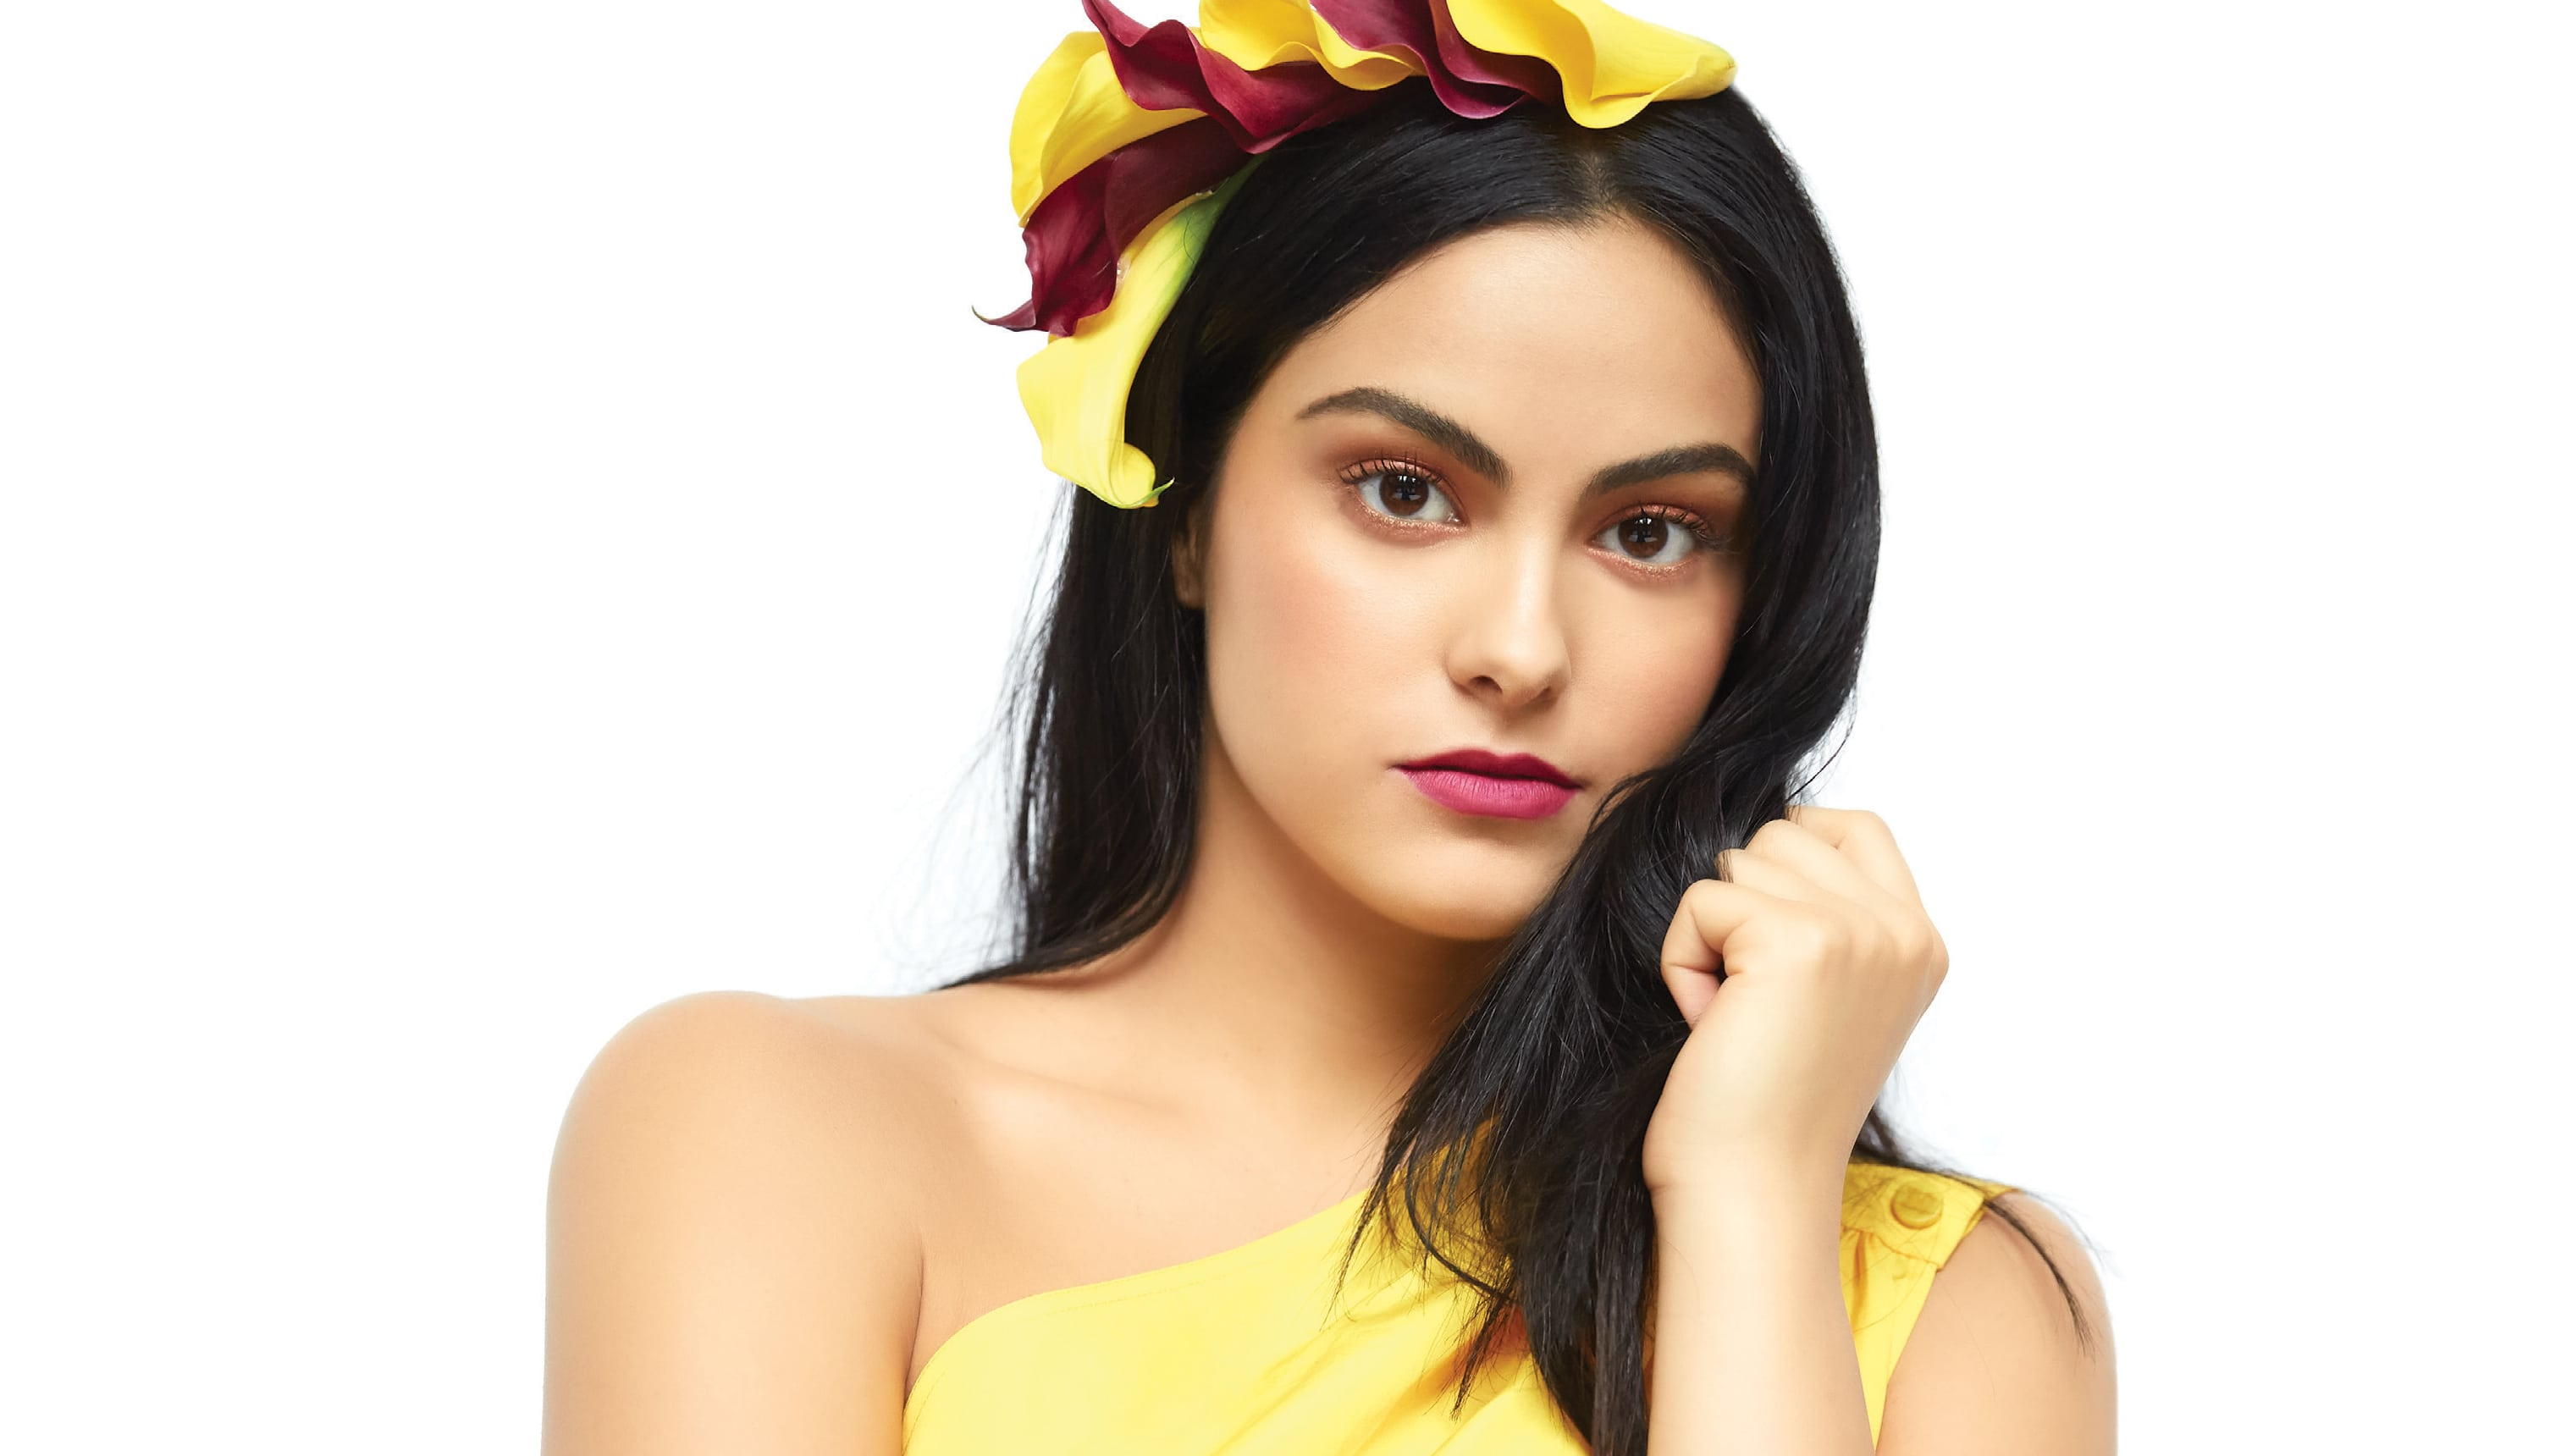 'Riverdale' Star Camila Mendes on Her Rise to Fame & the Power of Intuition